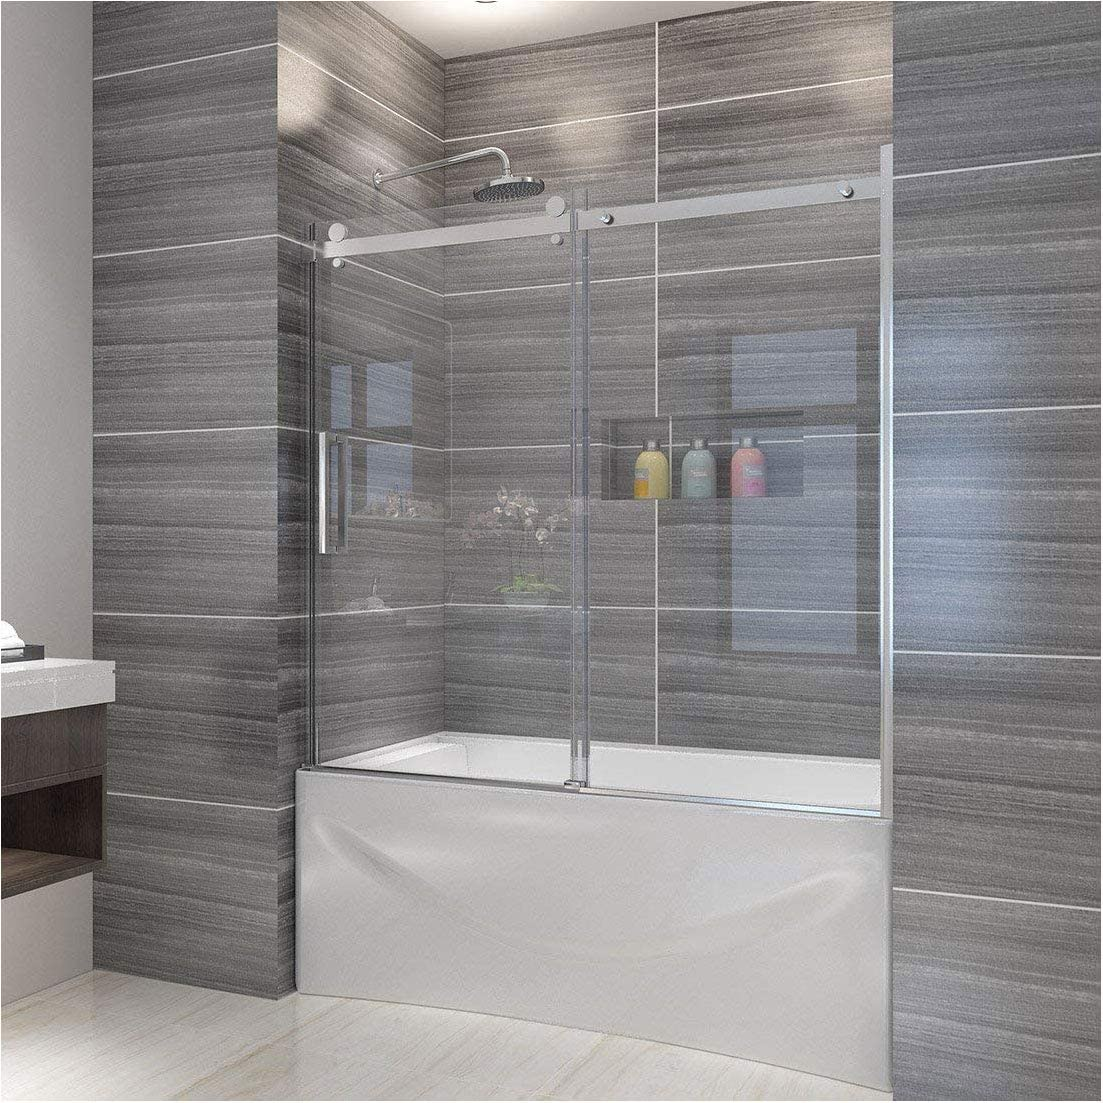 ELEGANT 60 W x 62 H Frameless Bath Tub Door, 5 16 Clear Sliding Shower Glass Panel Bathtub Shower Door, One Direction Sliding One Fixed Glass, Chrome Finish